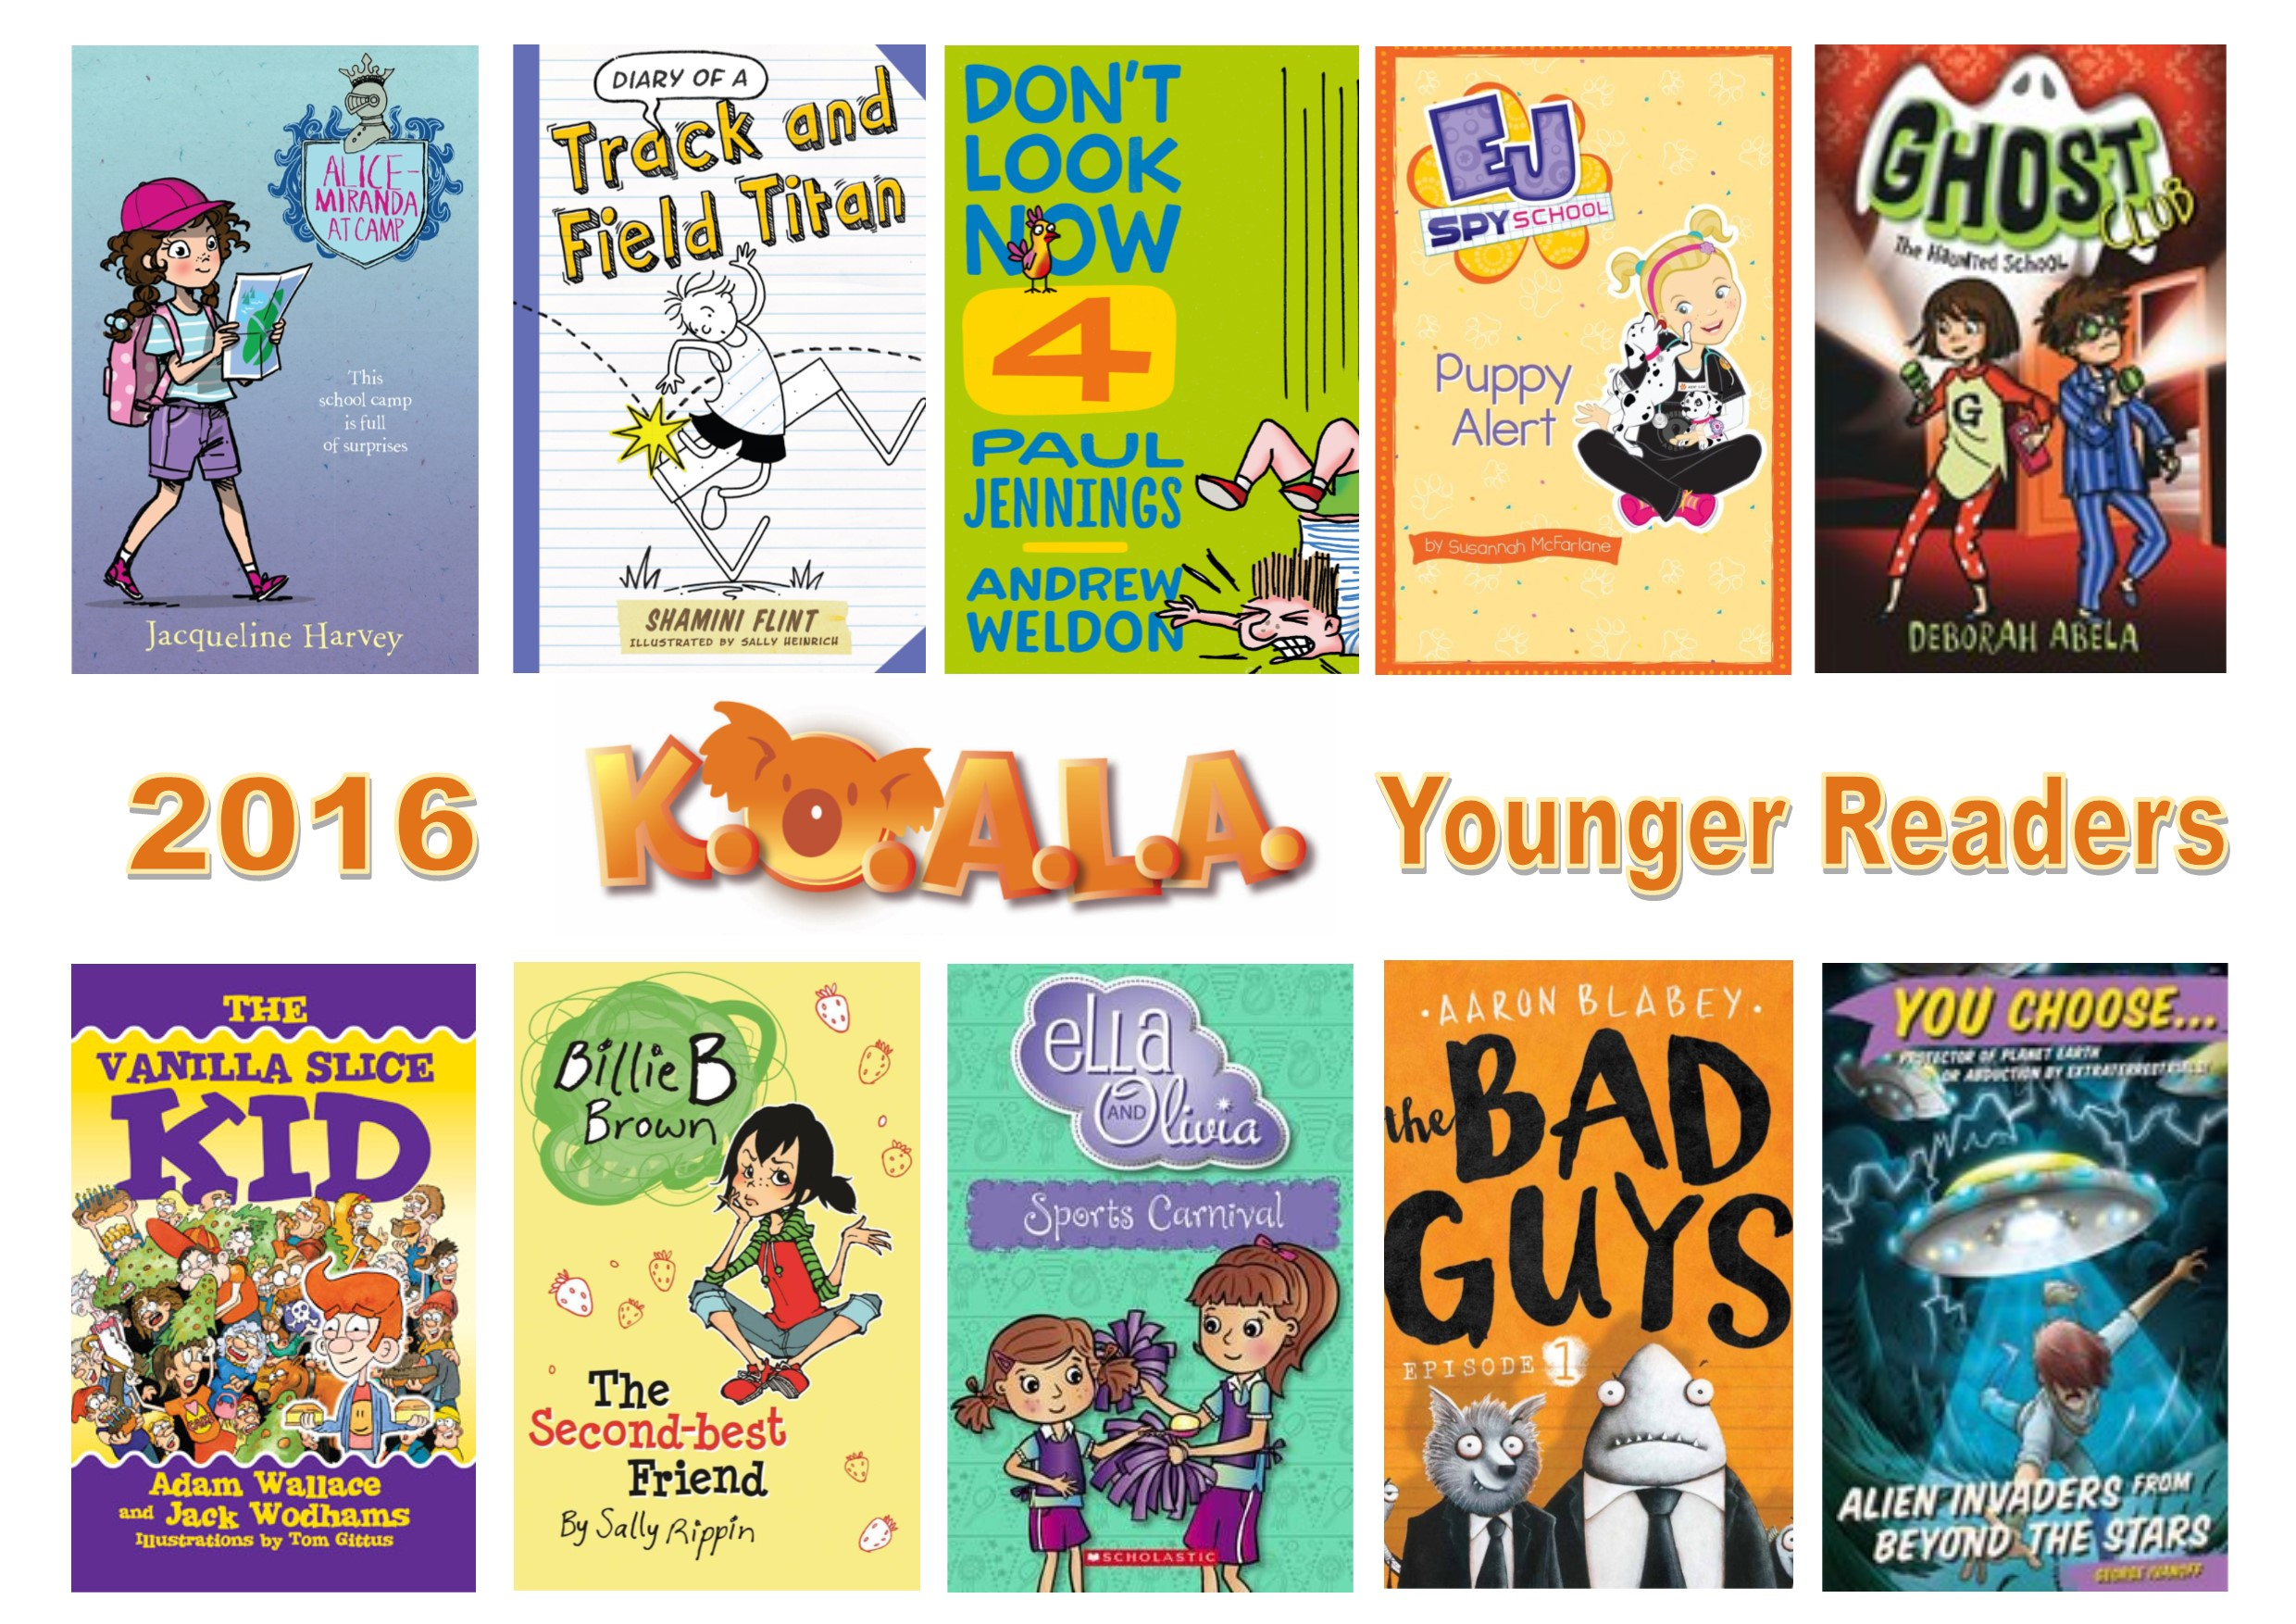 KOALA+Shortlist+posters+Younger+Readers+2016.jpg